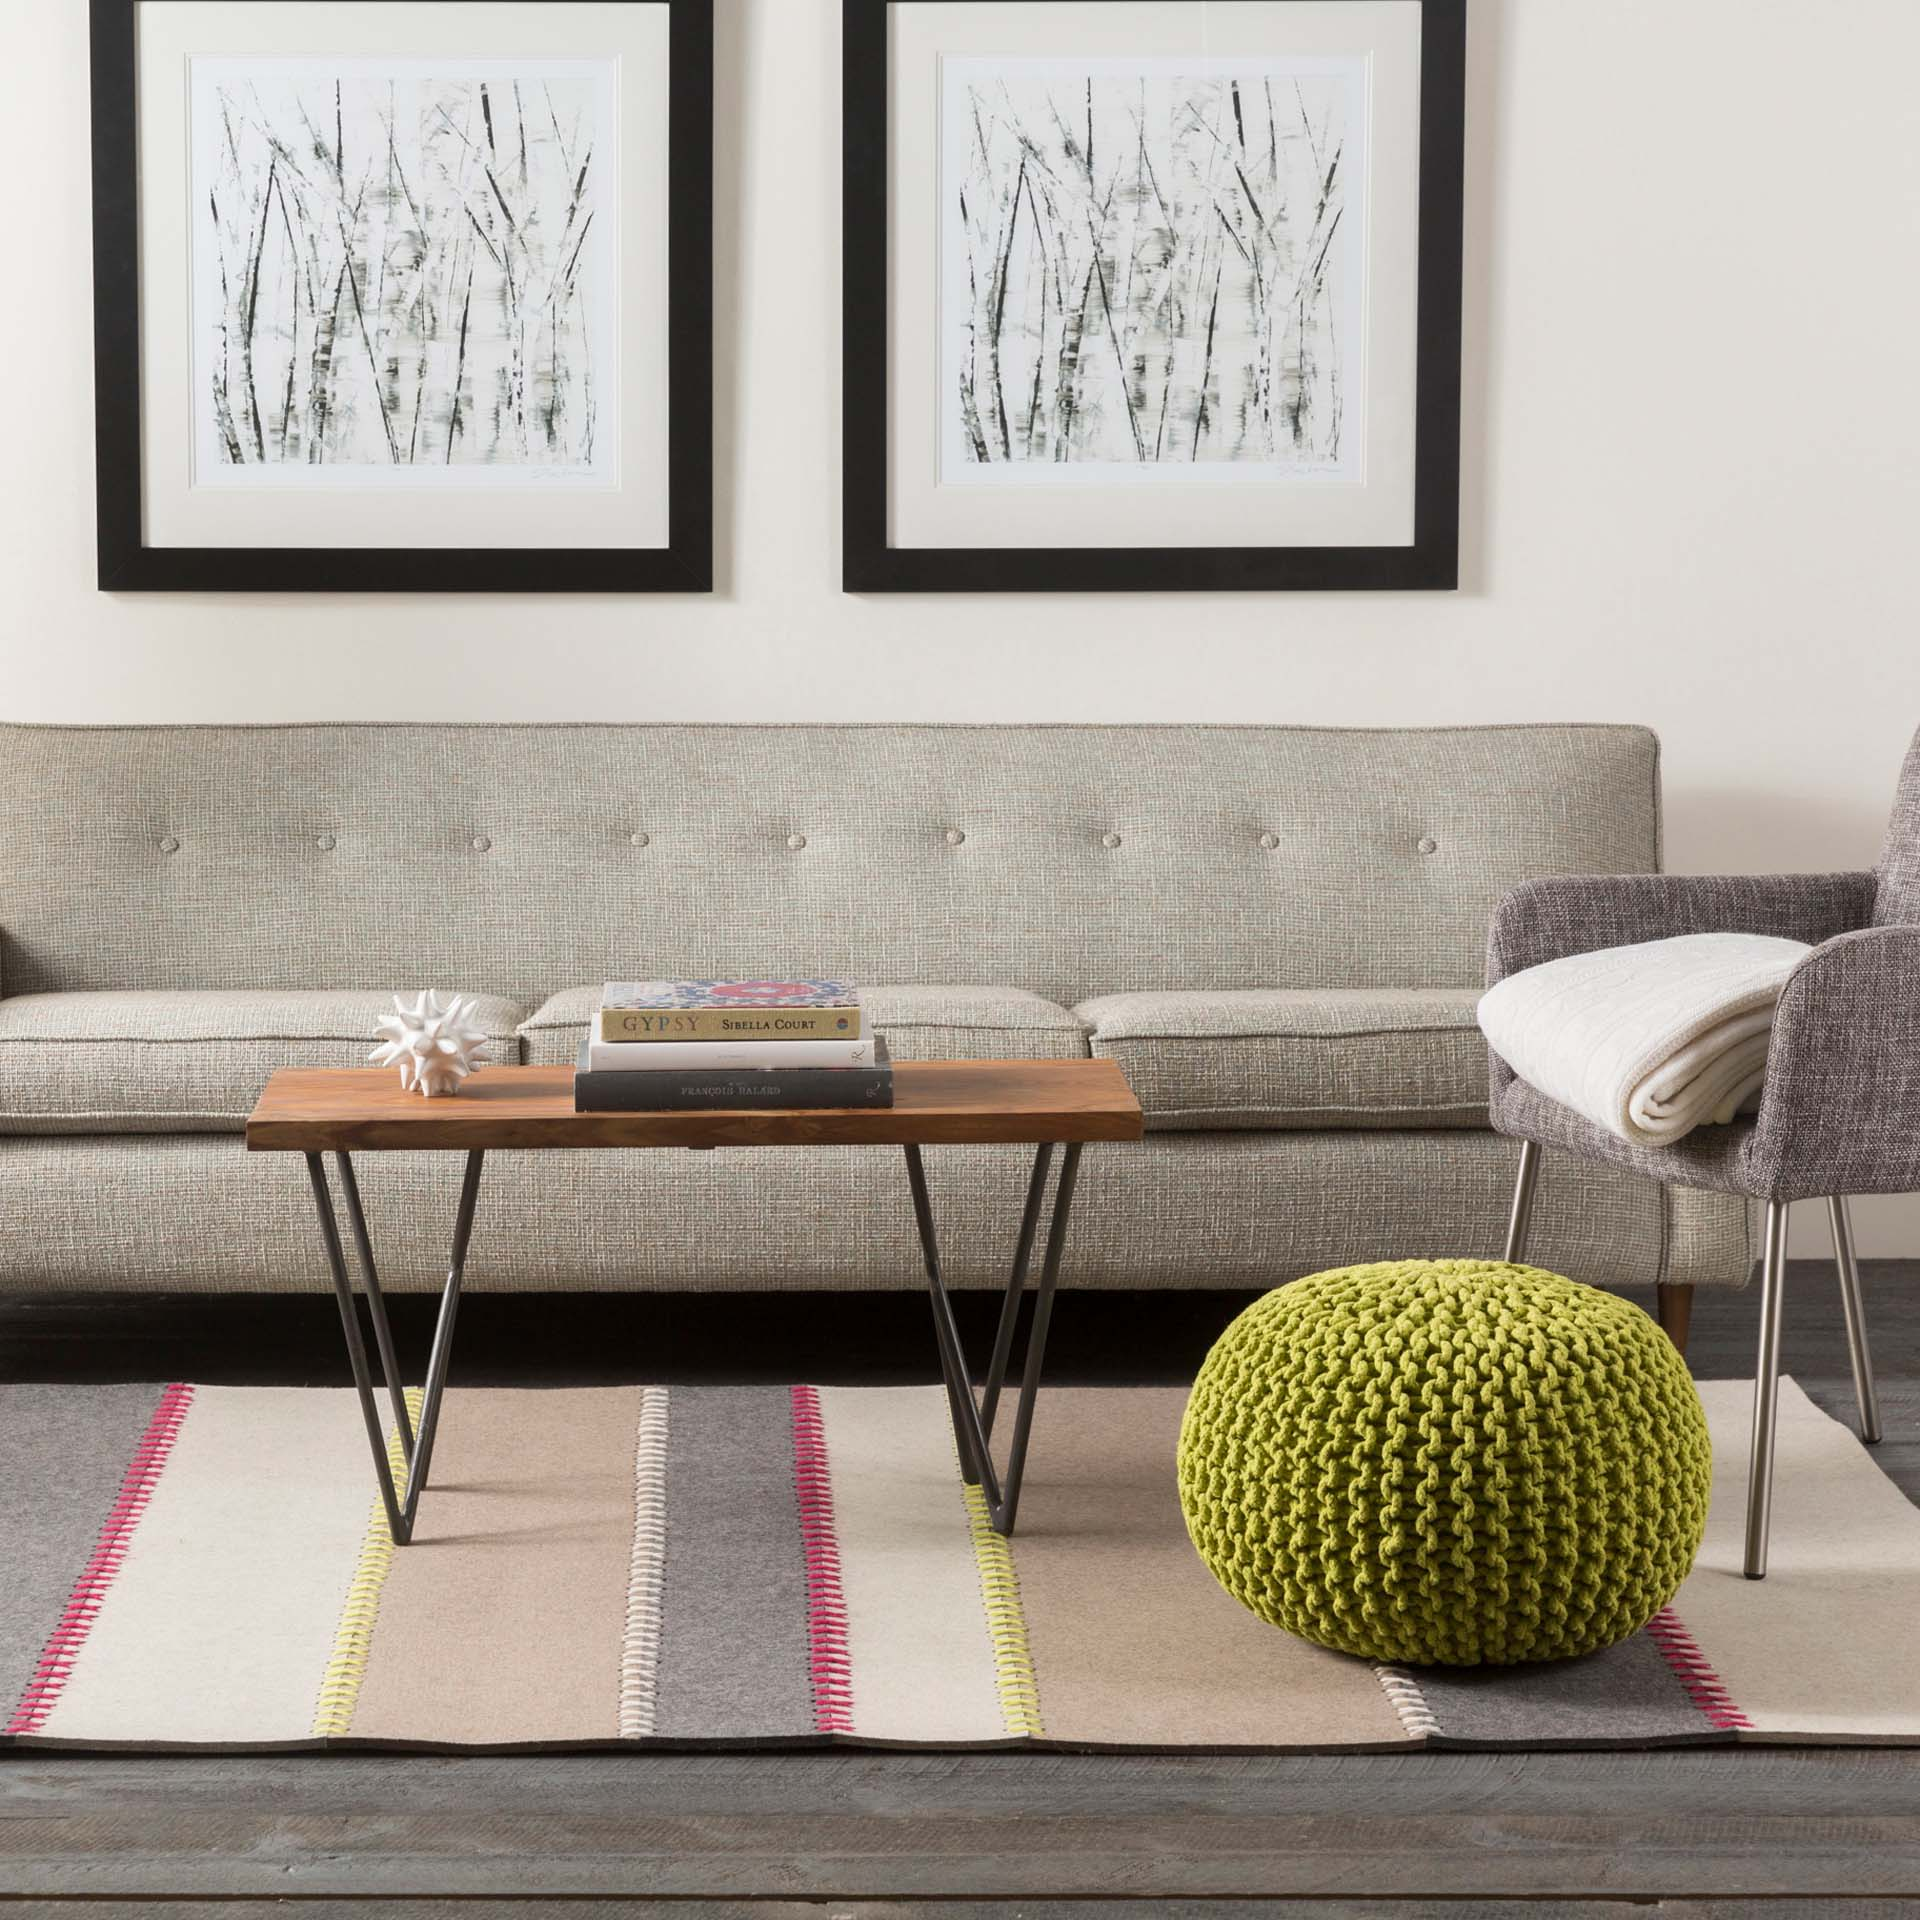 Handmade Surya Thread Collection rug comes adorned in felted wood from India in a natural earth tone stripe pattern perfect for your living room floor.